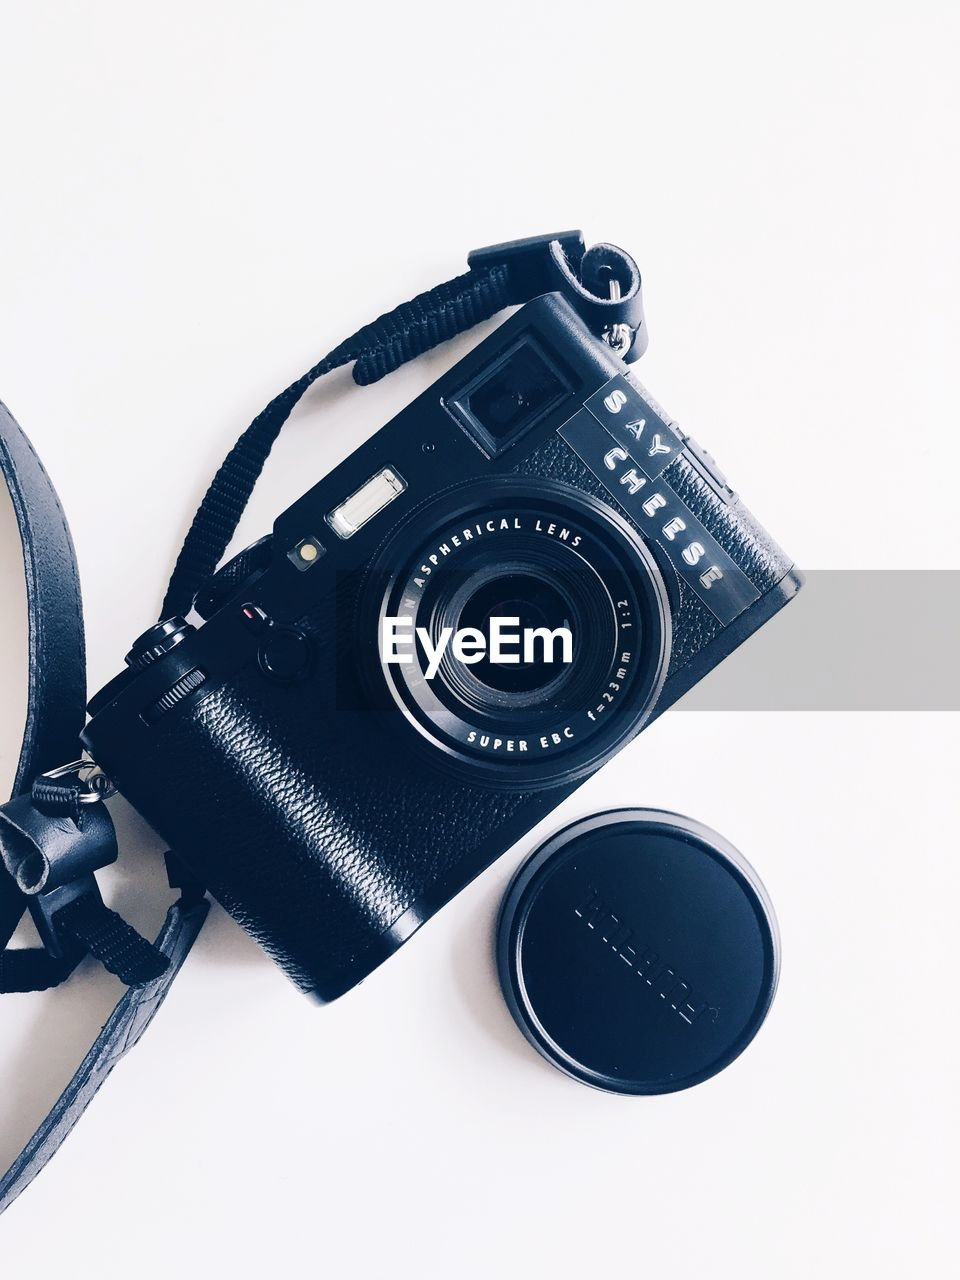 photography themes, technology, studio shot, white background, camera - photographic equipment, indoors, photographic equipment, still life, close-up, black color, no people, lens - optical instrument, digital camera, camera, high angle view, equipment, cut out, retro styled, copy space, slr camera